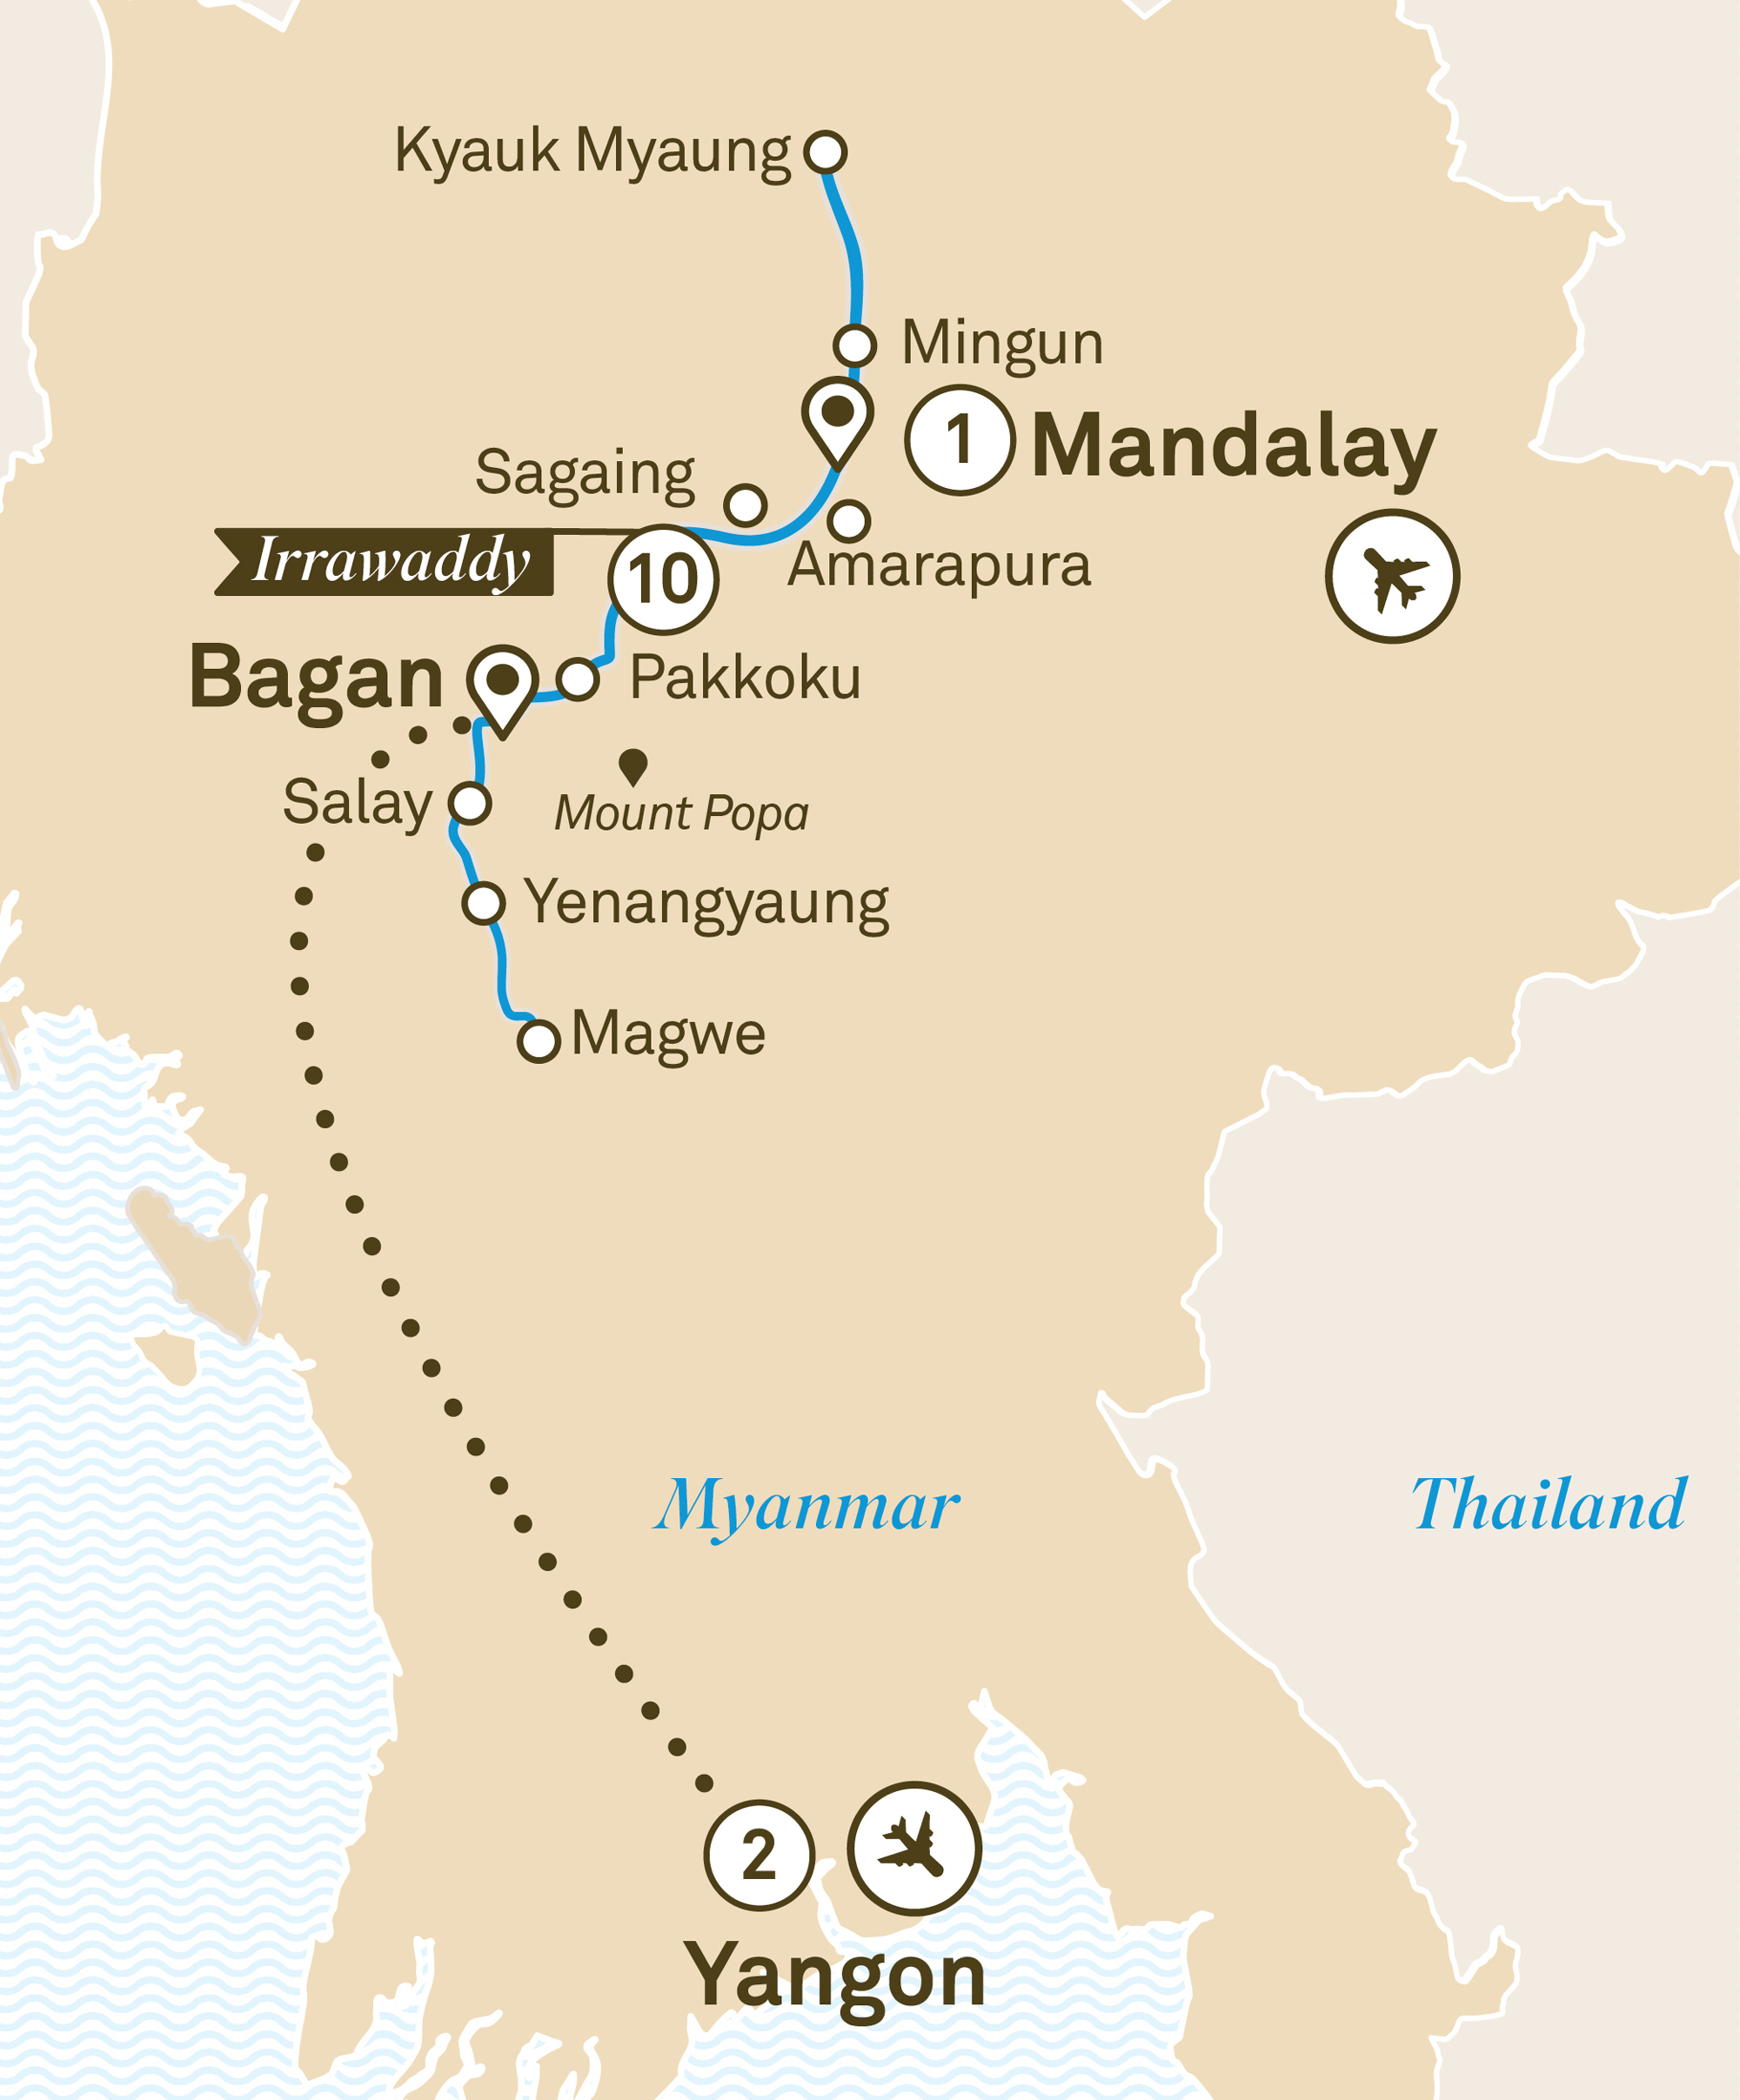 Mystical Irrawaddy Mandalay to Yangon 2019